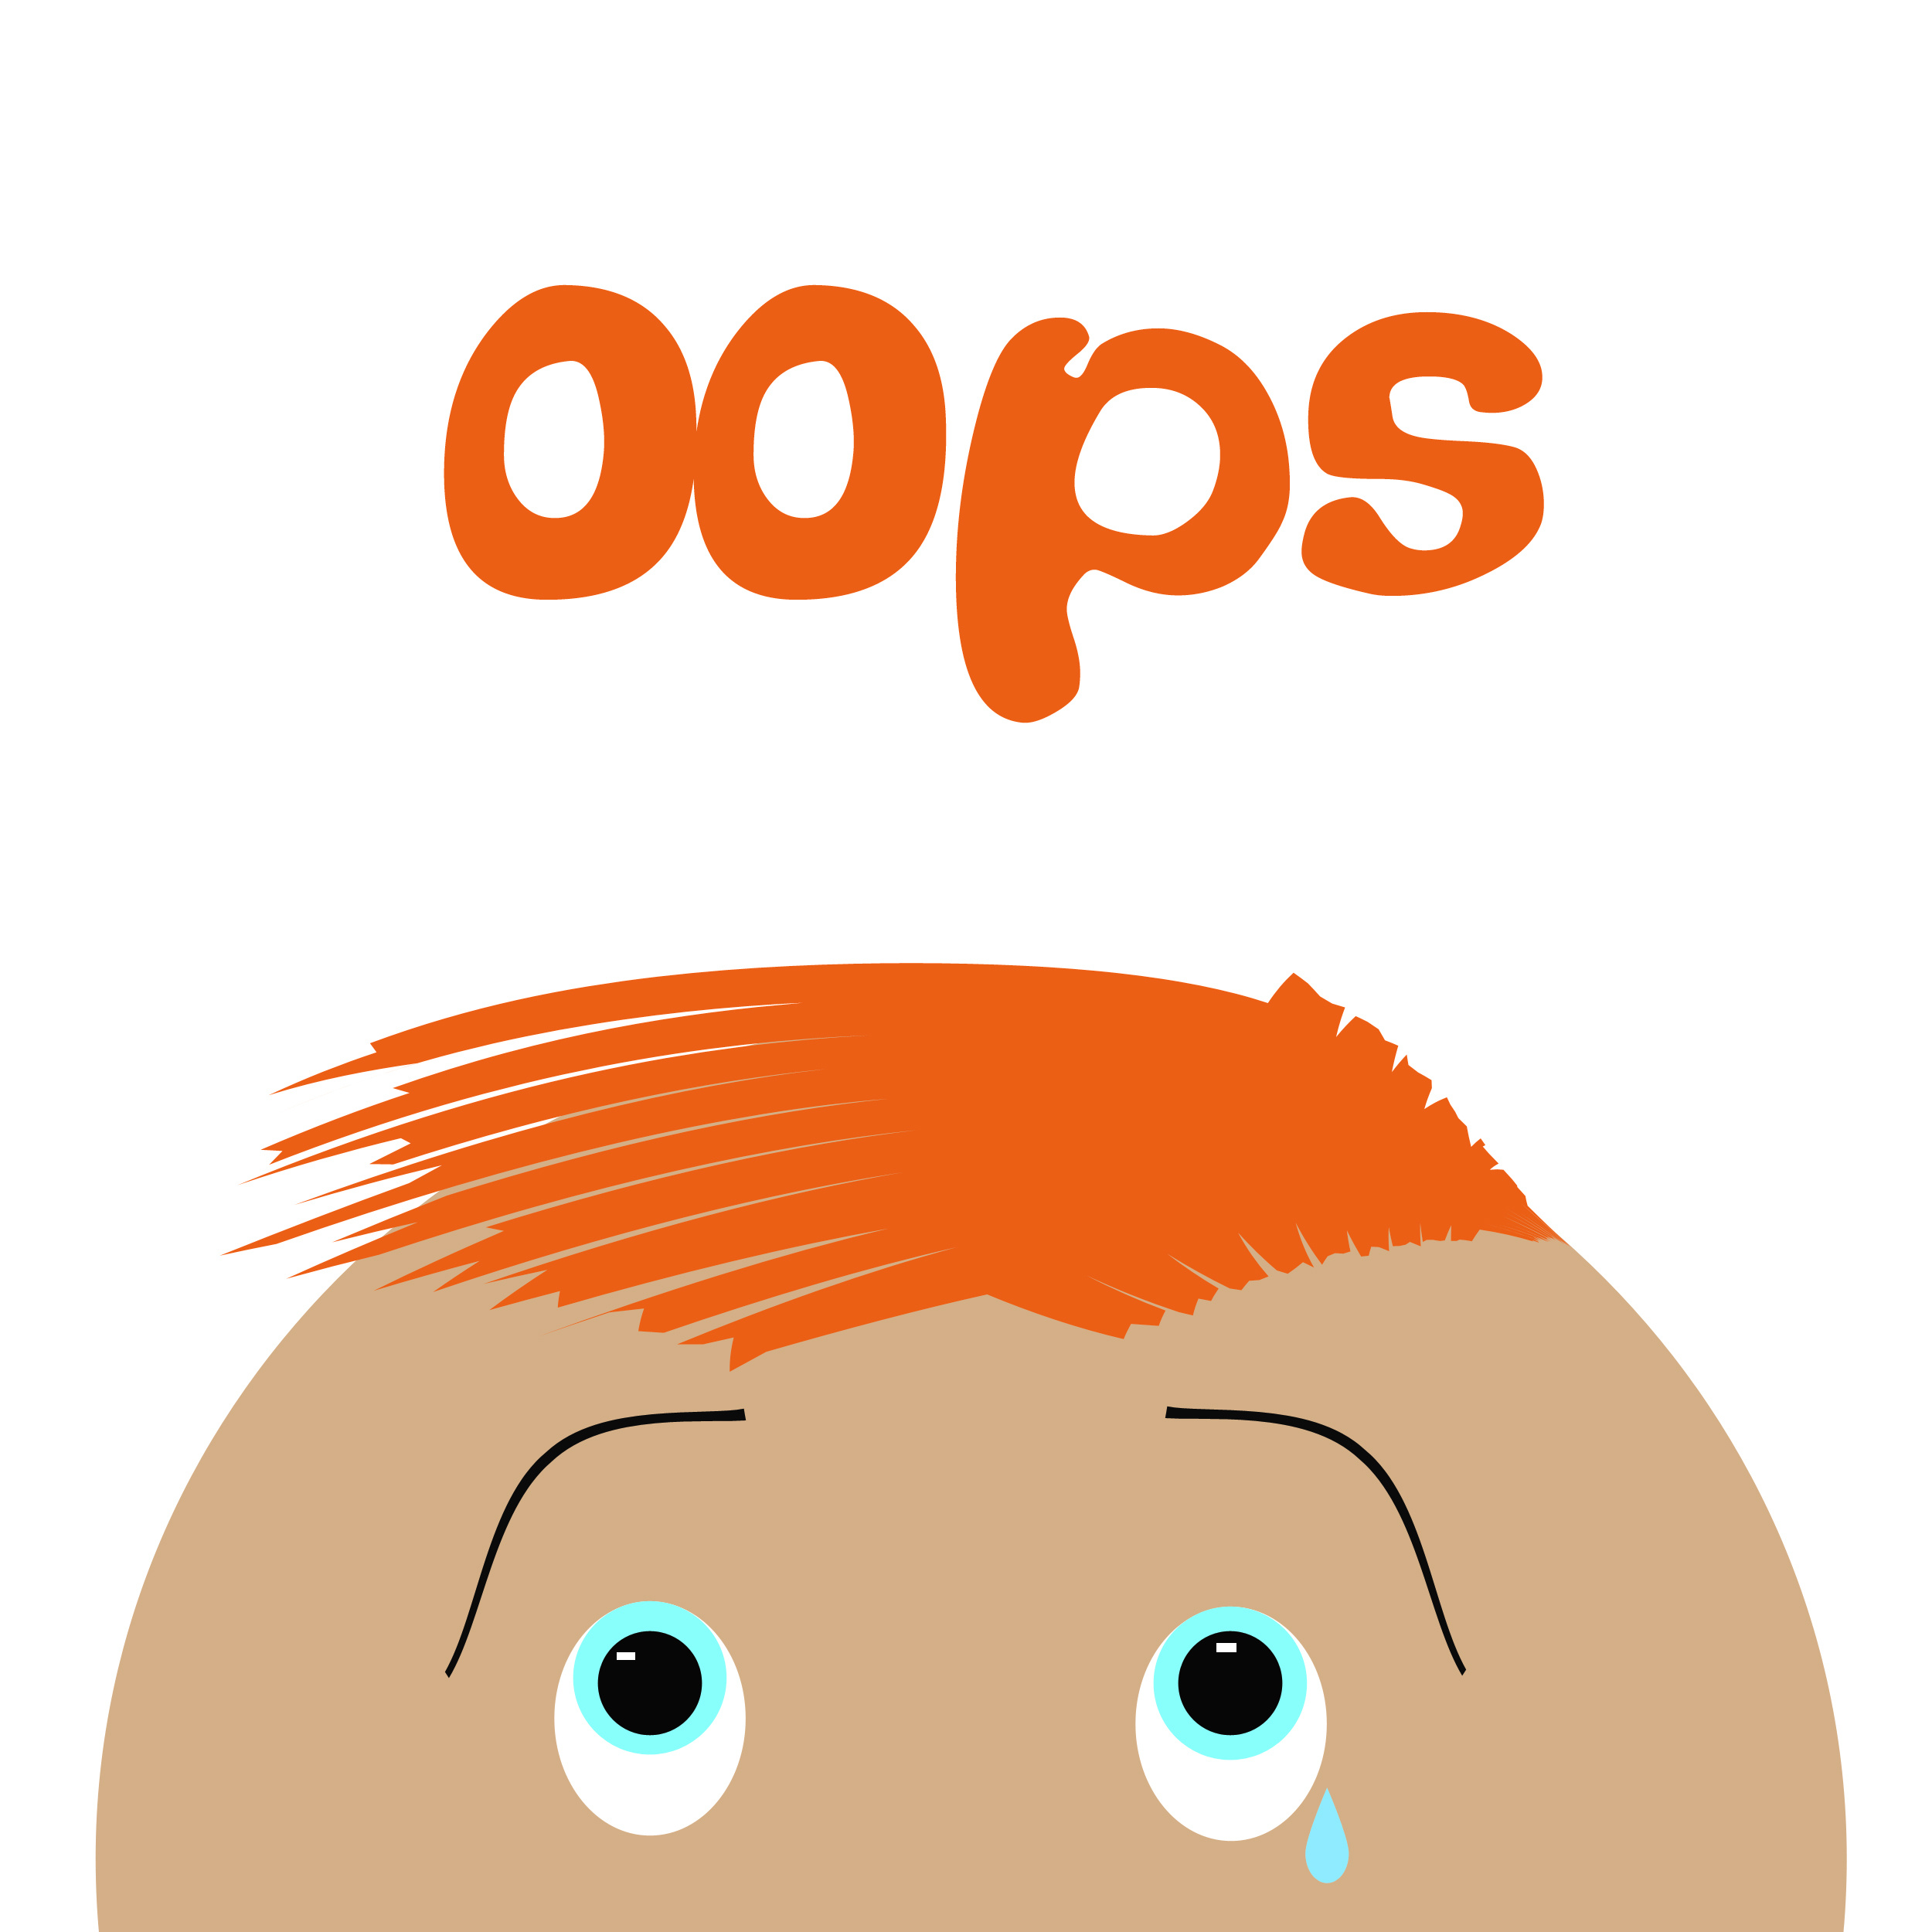 Oops Clipart - Clipart Kid